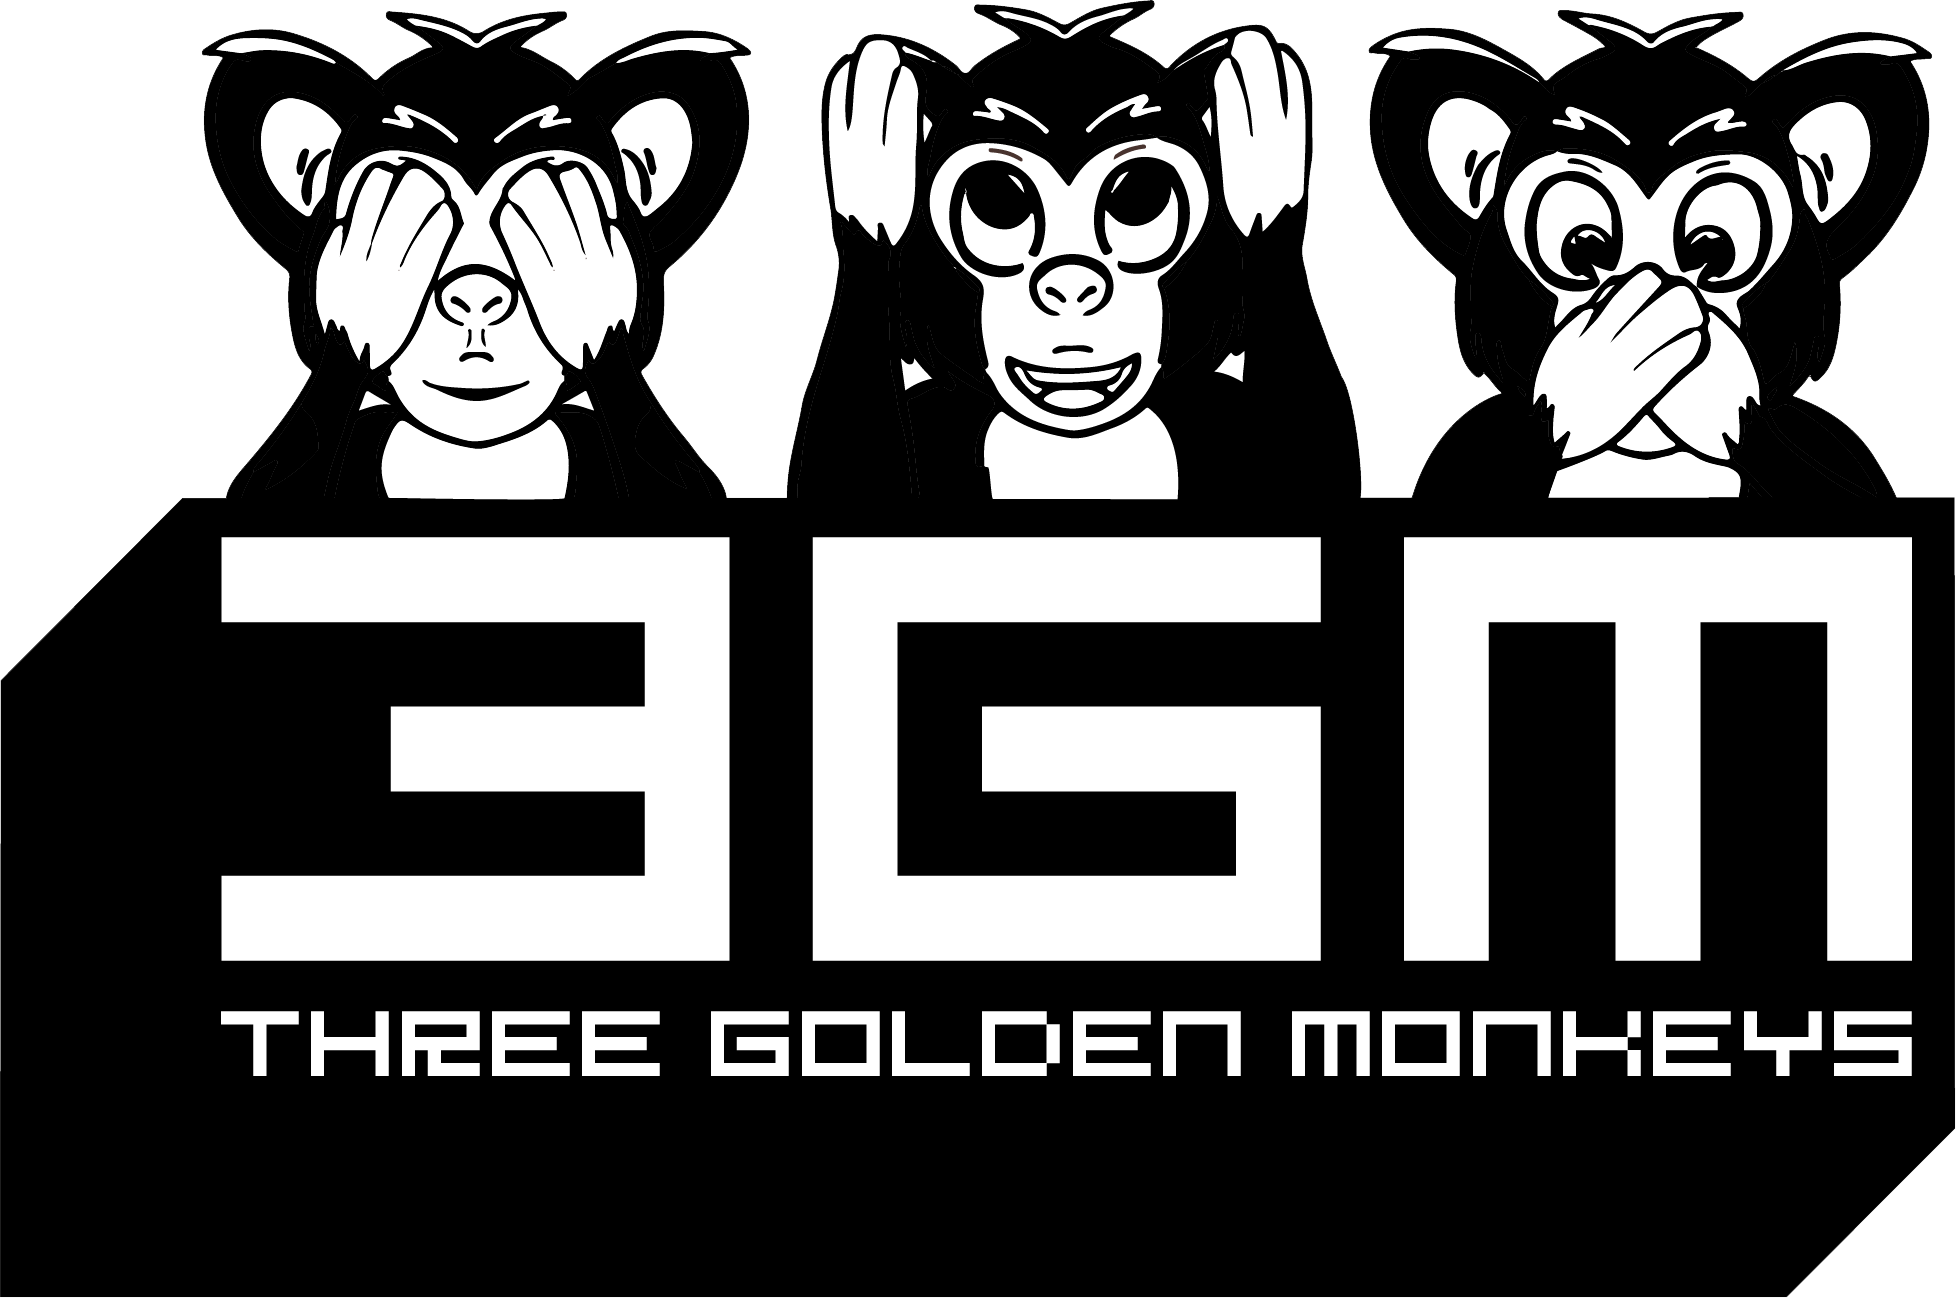 juegos de futbol de peleas Archives - Three Golden Monkeys Lab